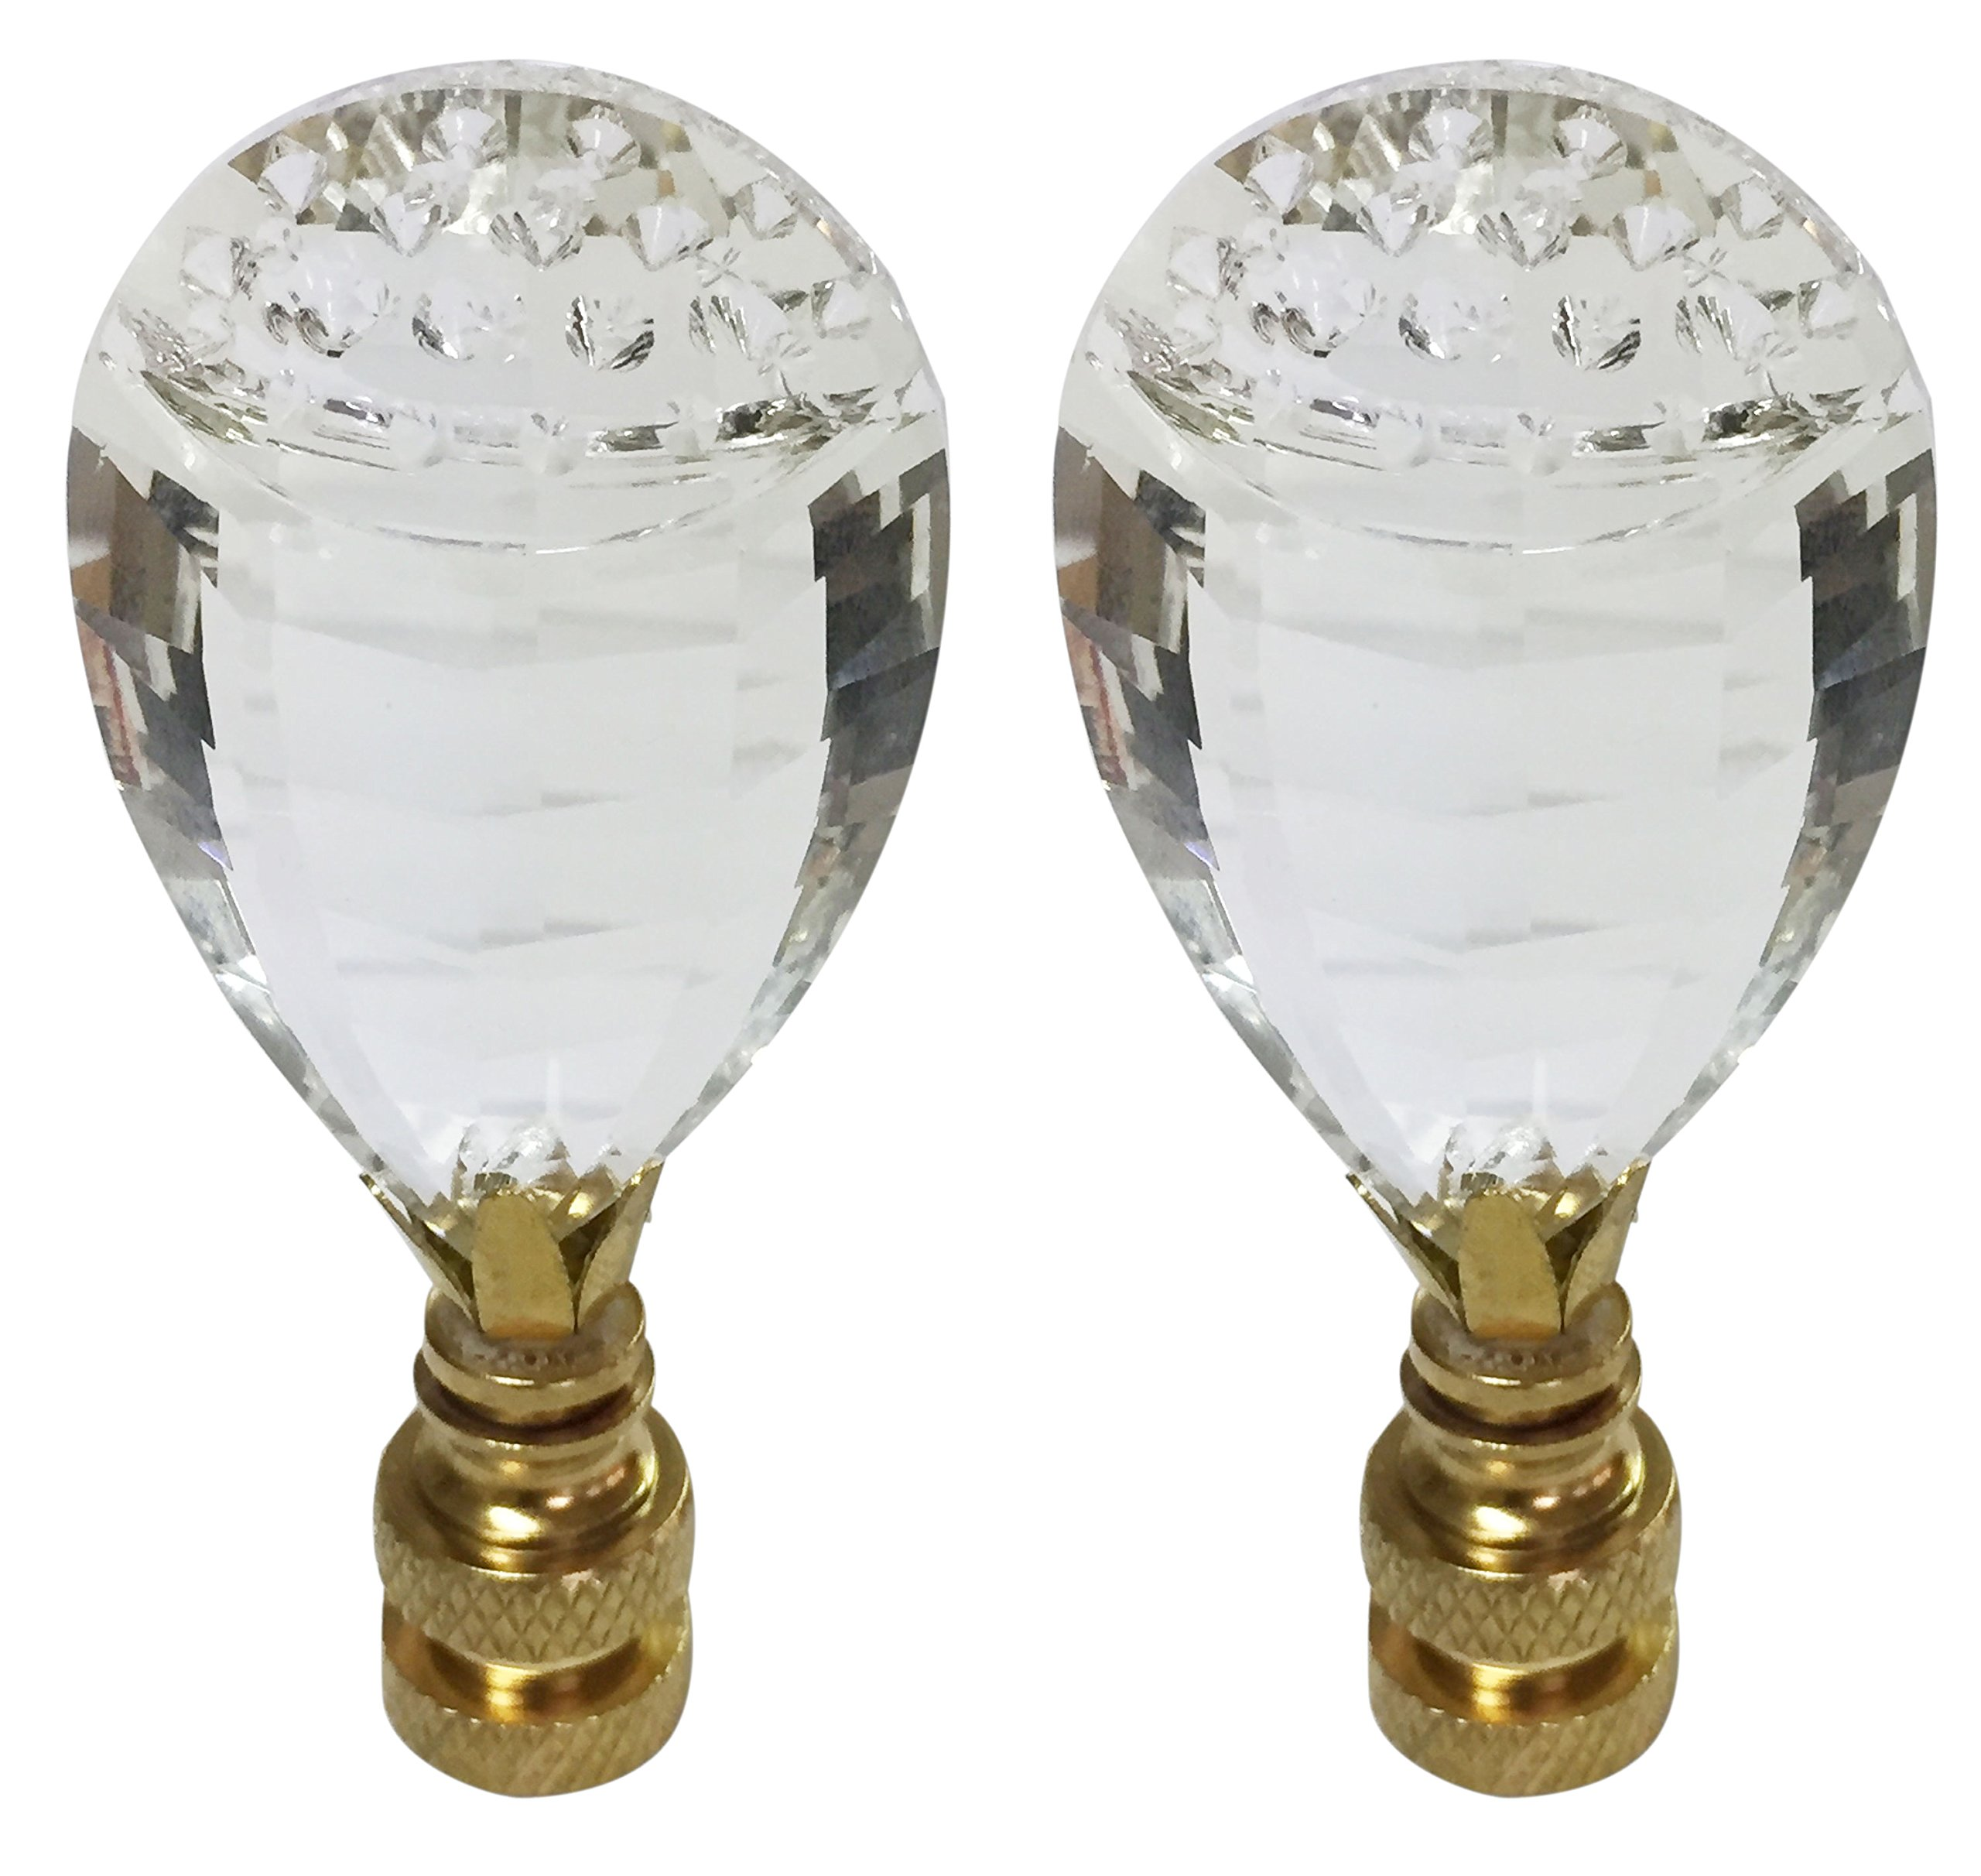 Royal Designs CCF2011-PB-2 Balloon Drop Clear K9 Crystal Finial for Lamp Shade with Polished Brass Base Set of 2, 2 Piece